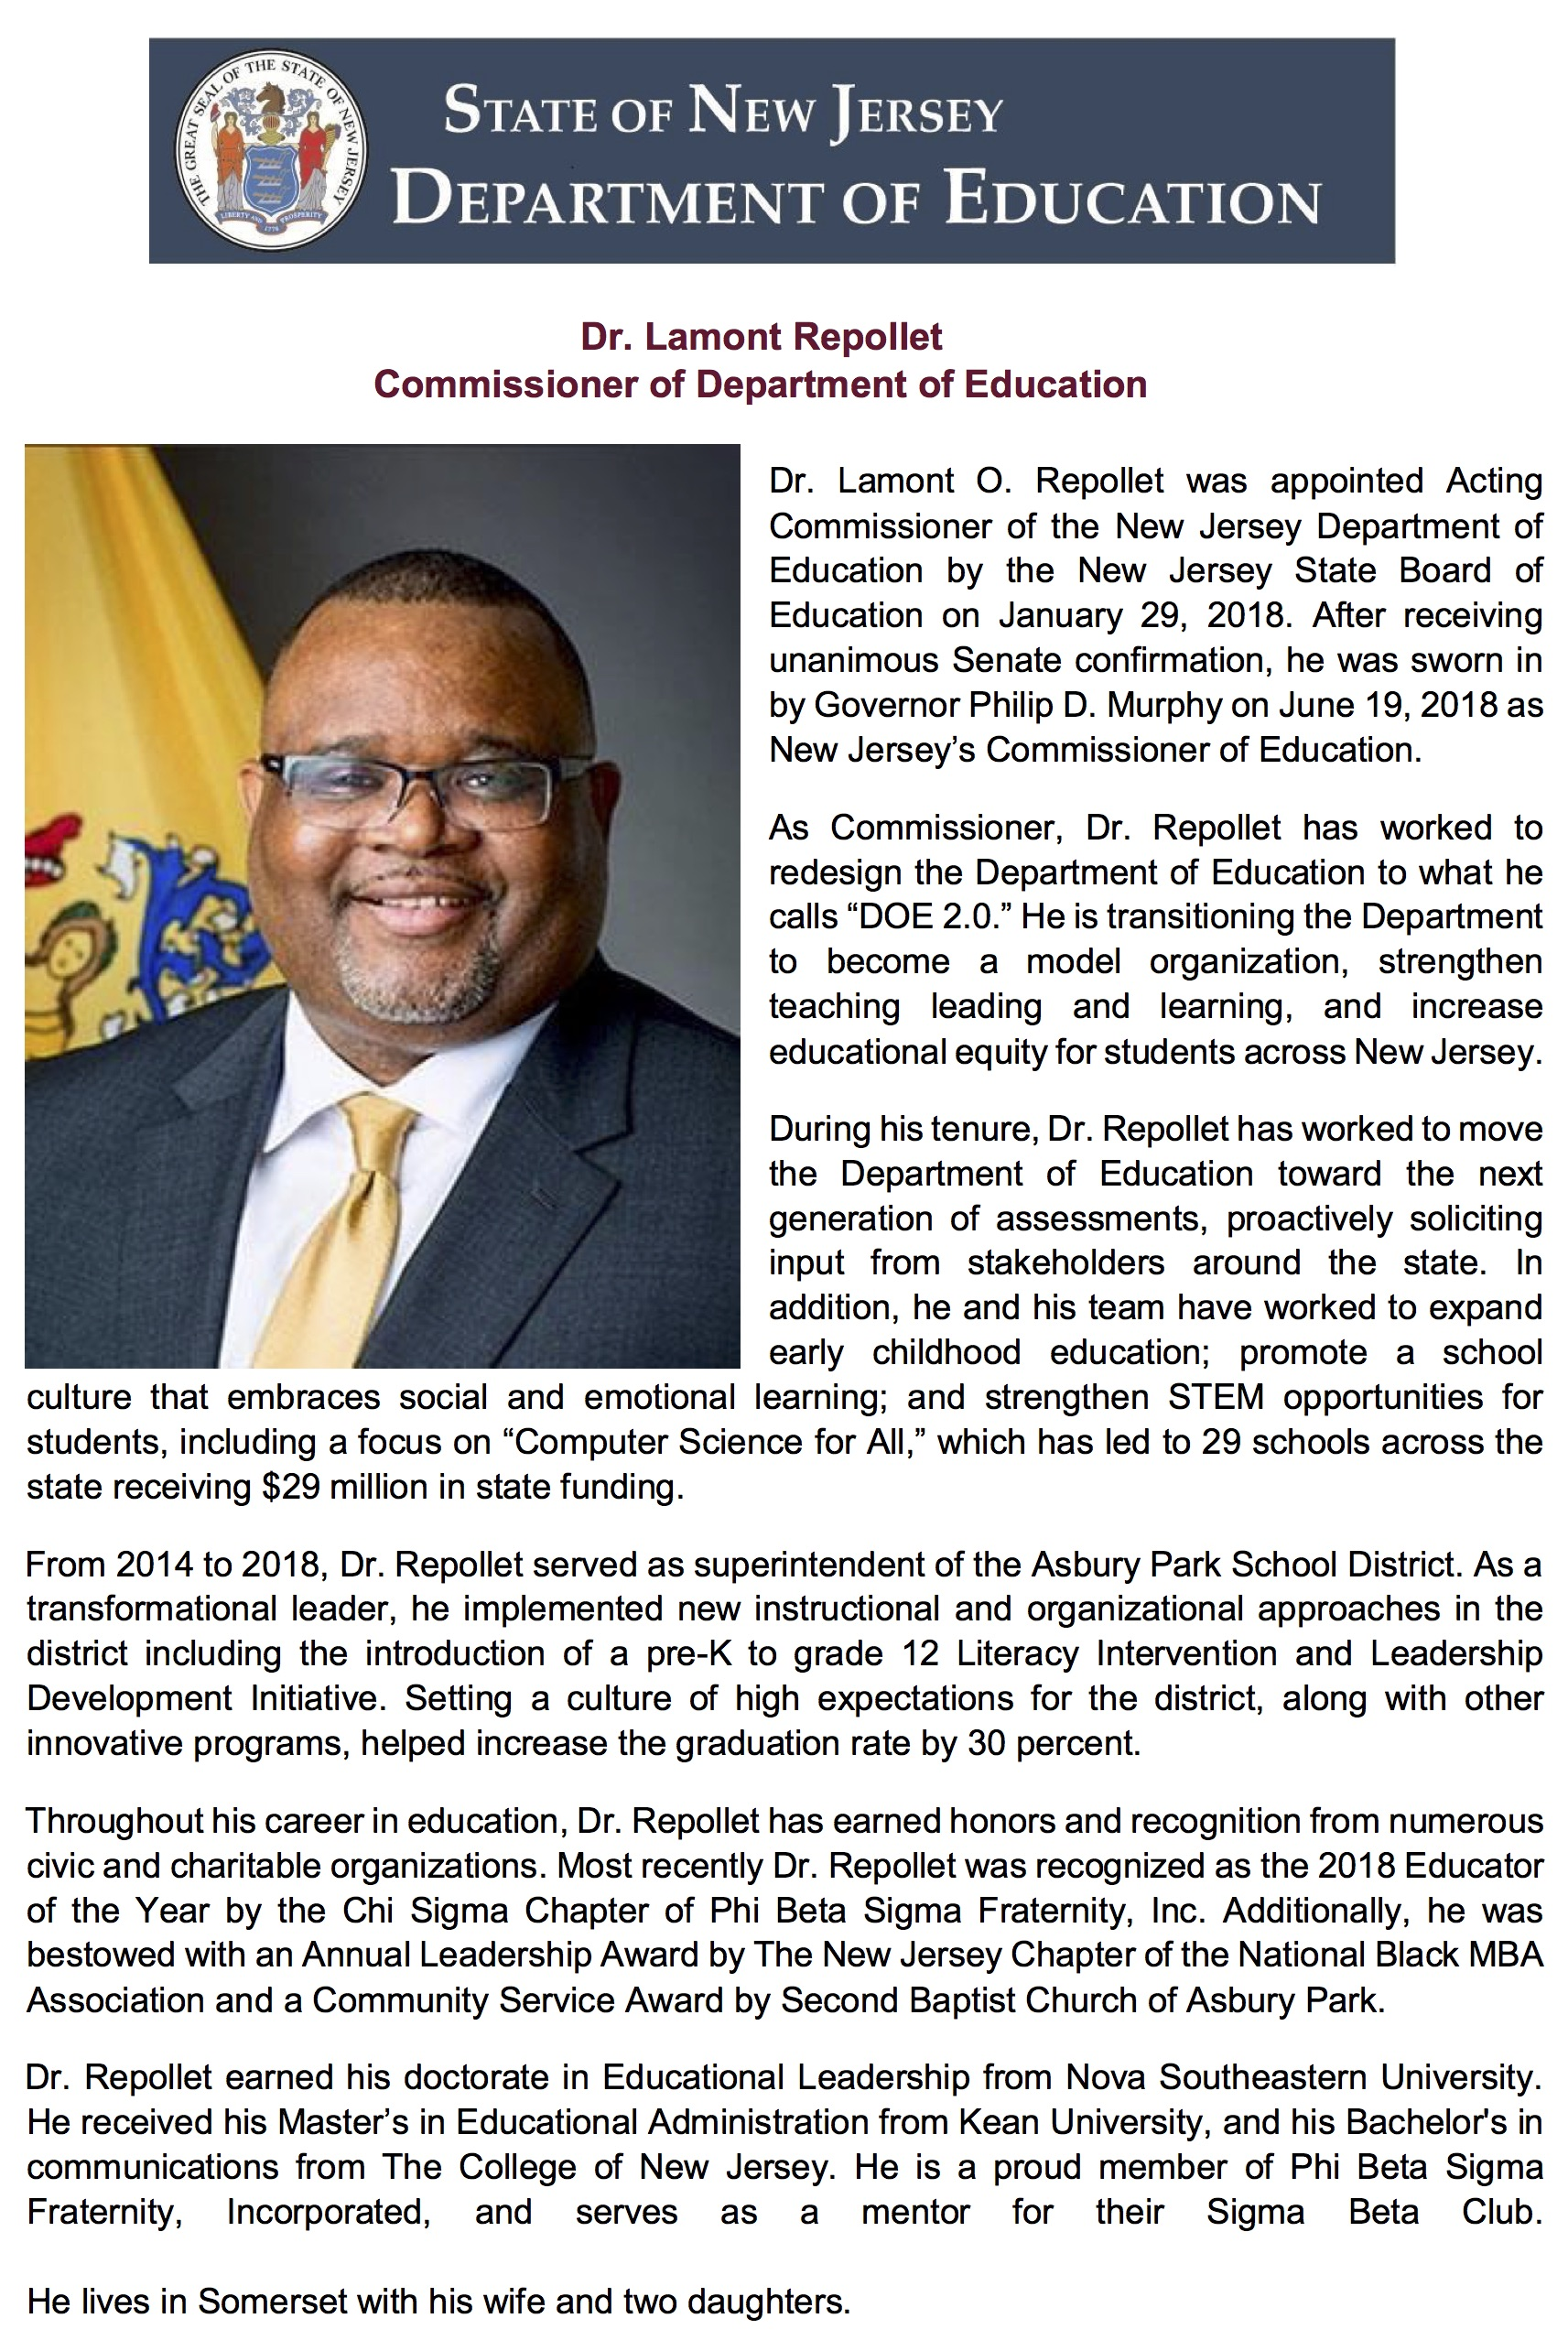 Commissioner of Education - Dr Lamont Rapollet Bio.jpg